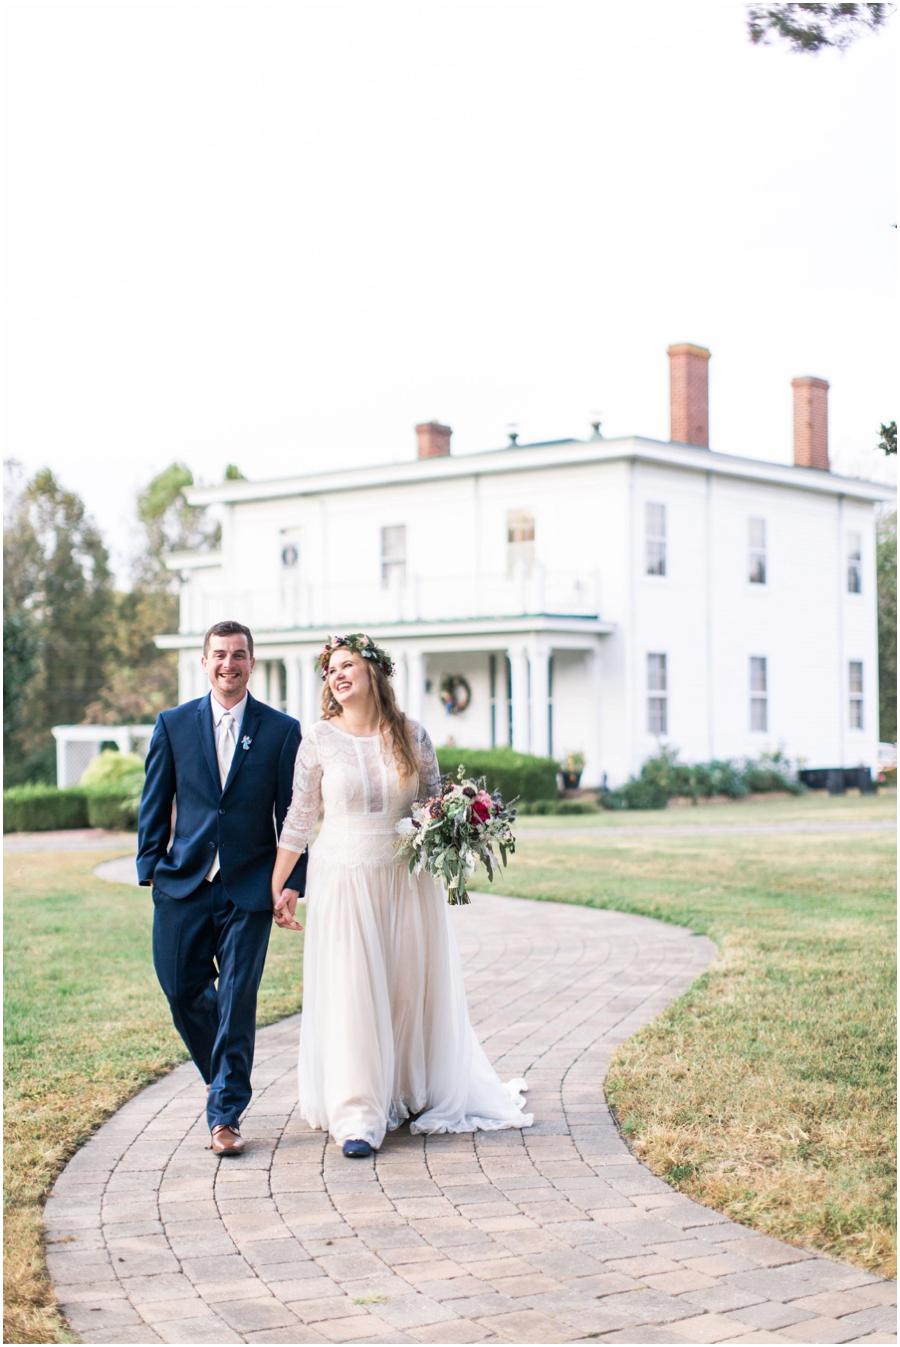 You can see the love radiating between them! The Manor House is the perfect backdrop for this candid shot.